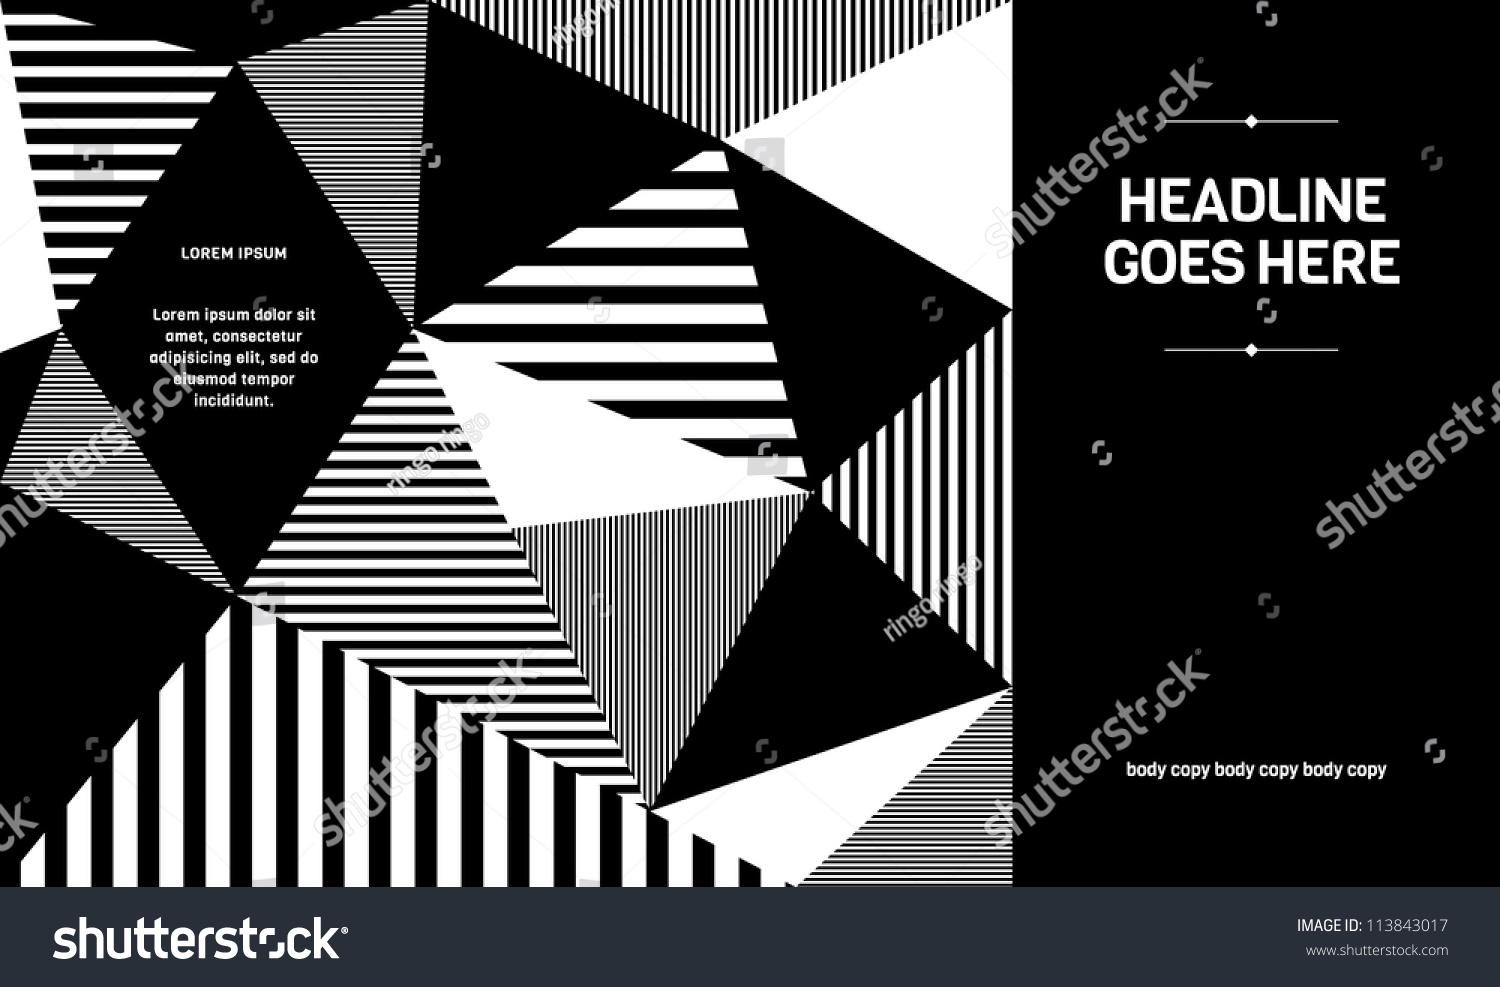 Design For Poster Vector